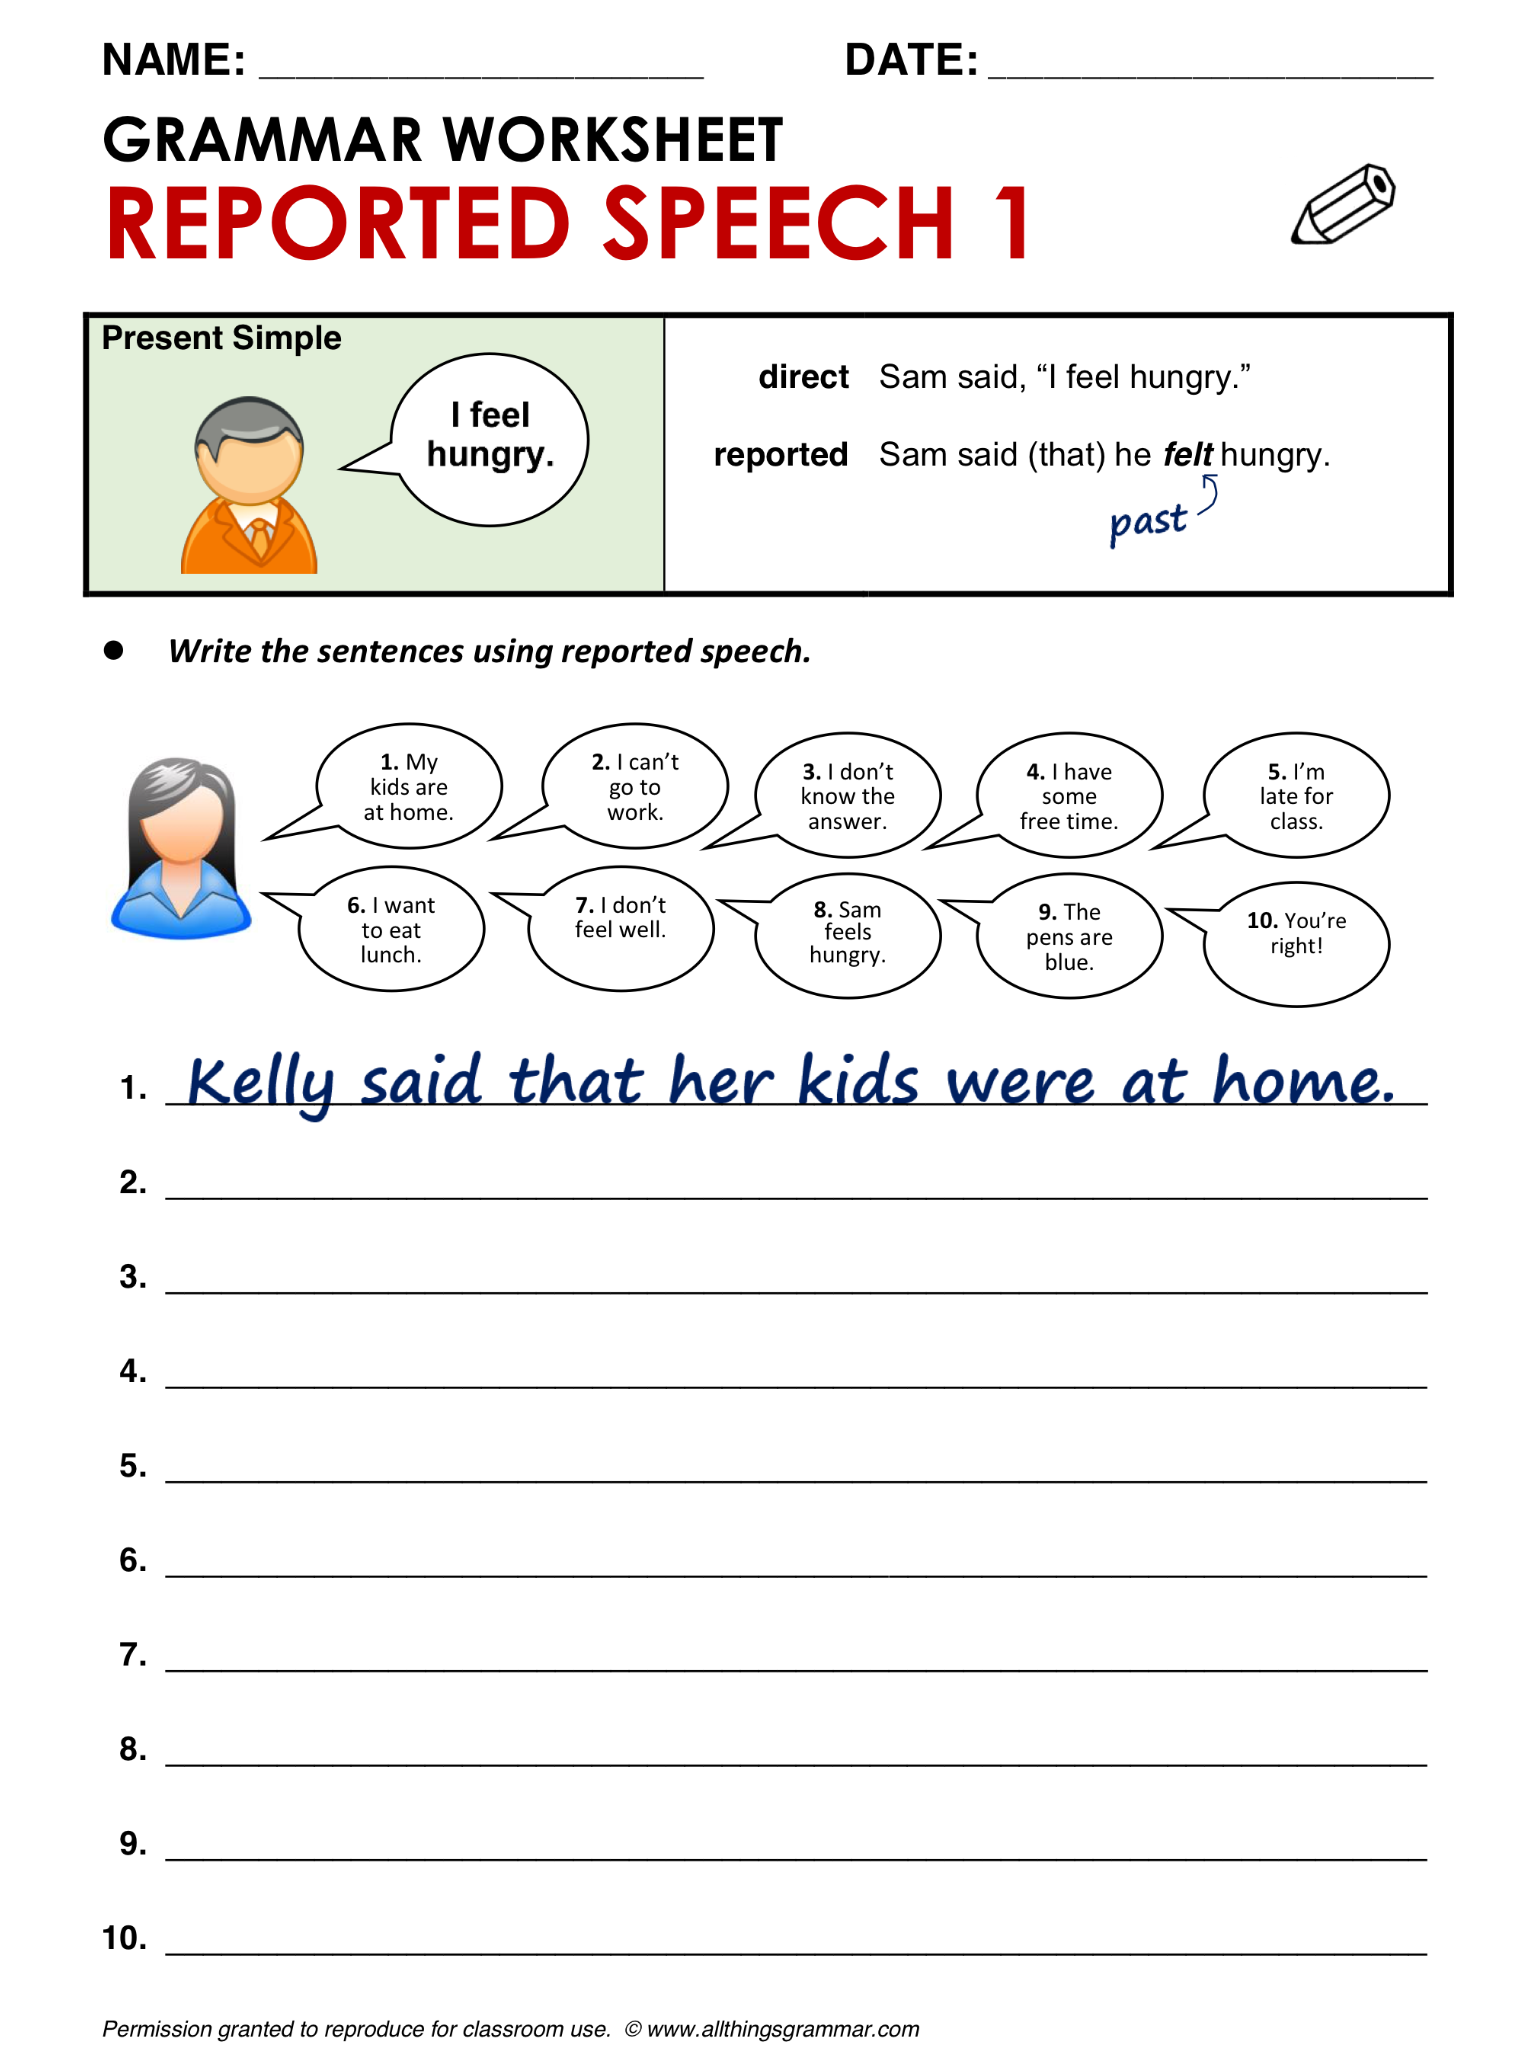 English Grammar Reported Speech 1 From Present Simple